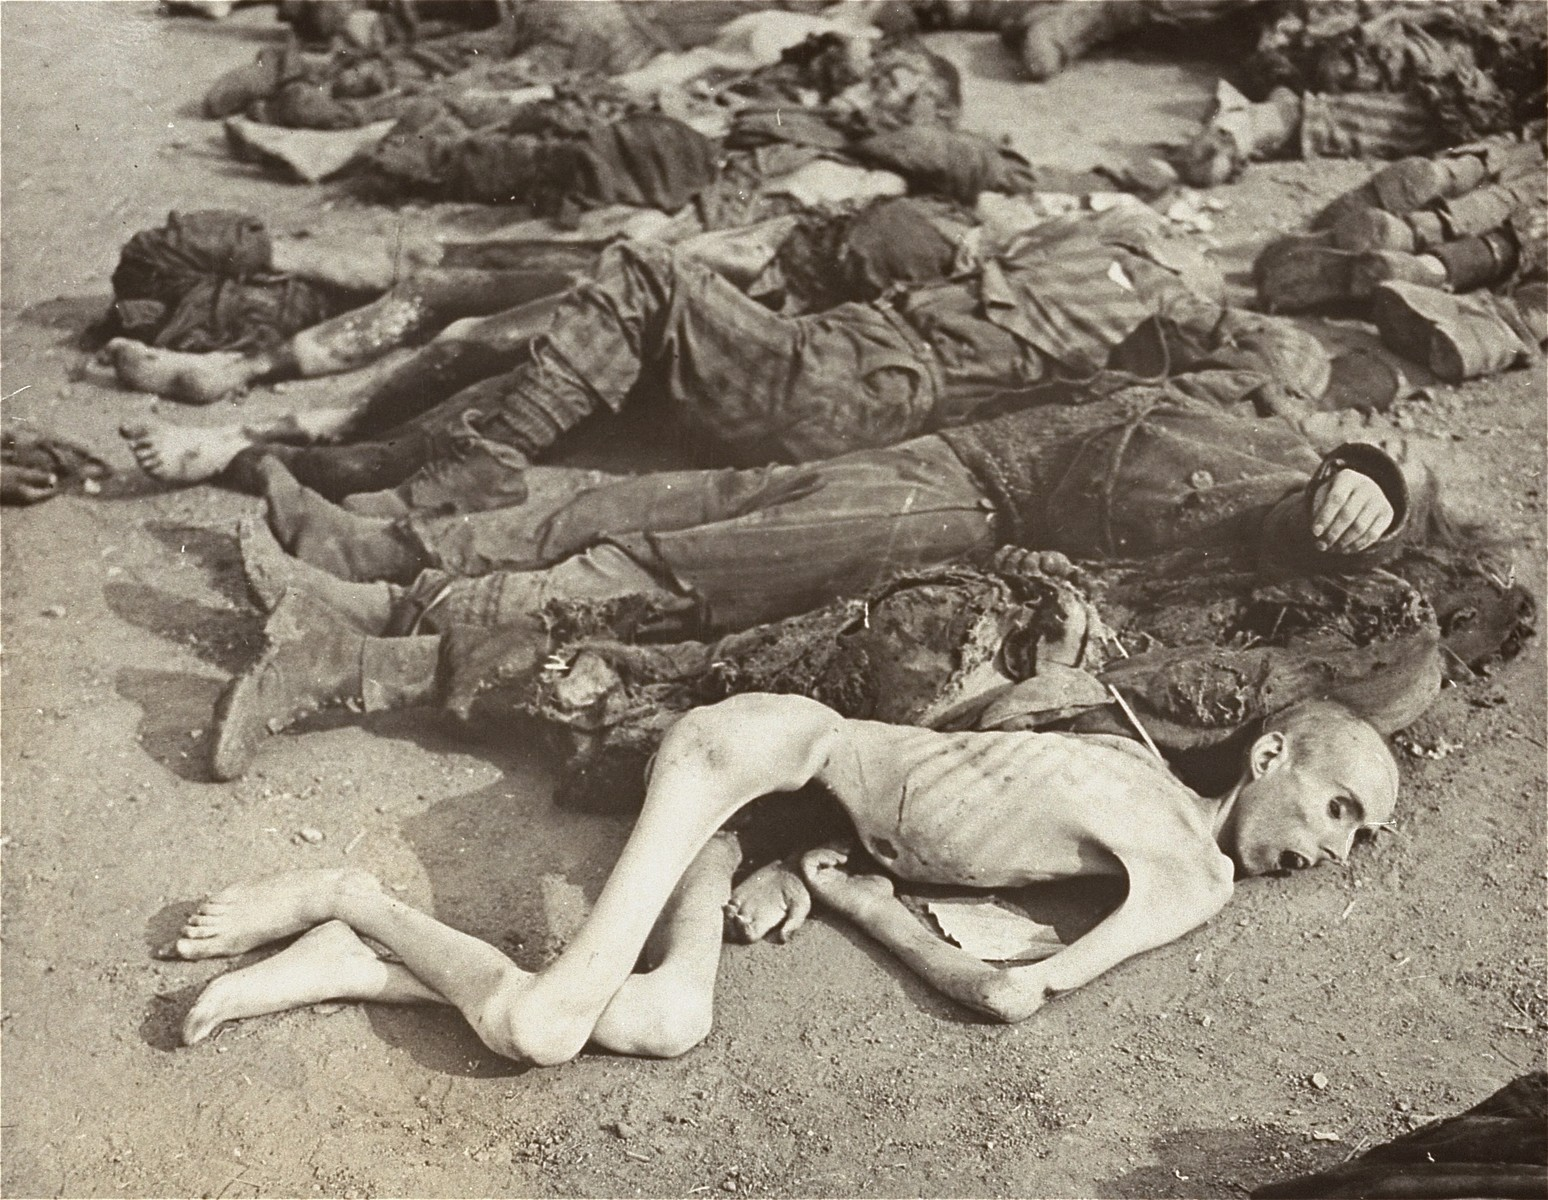 The corpses of prisoners laid out for mass burial in the Nordhausen concentration camp.